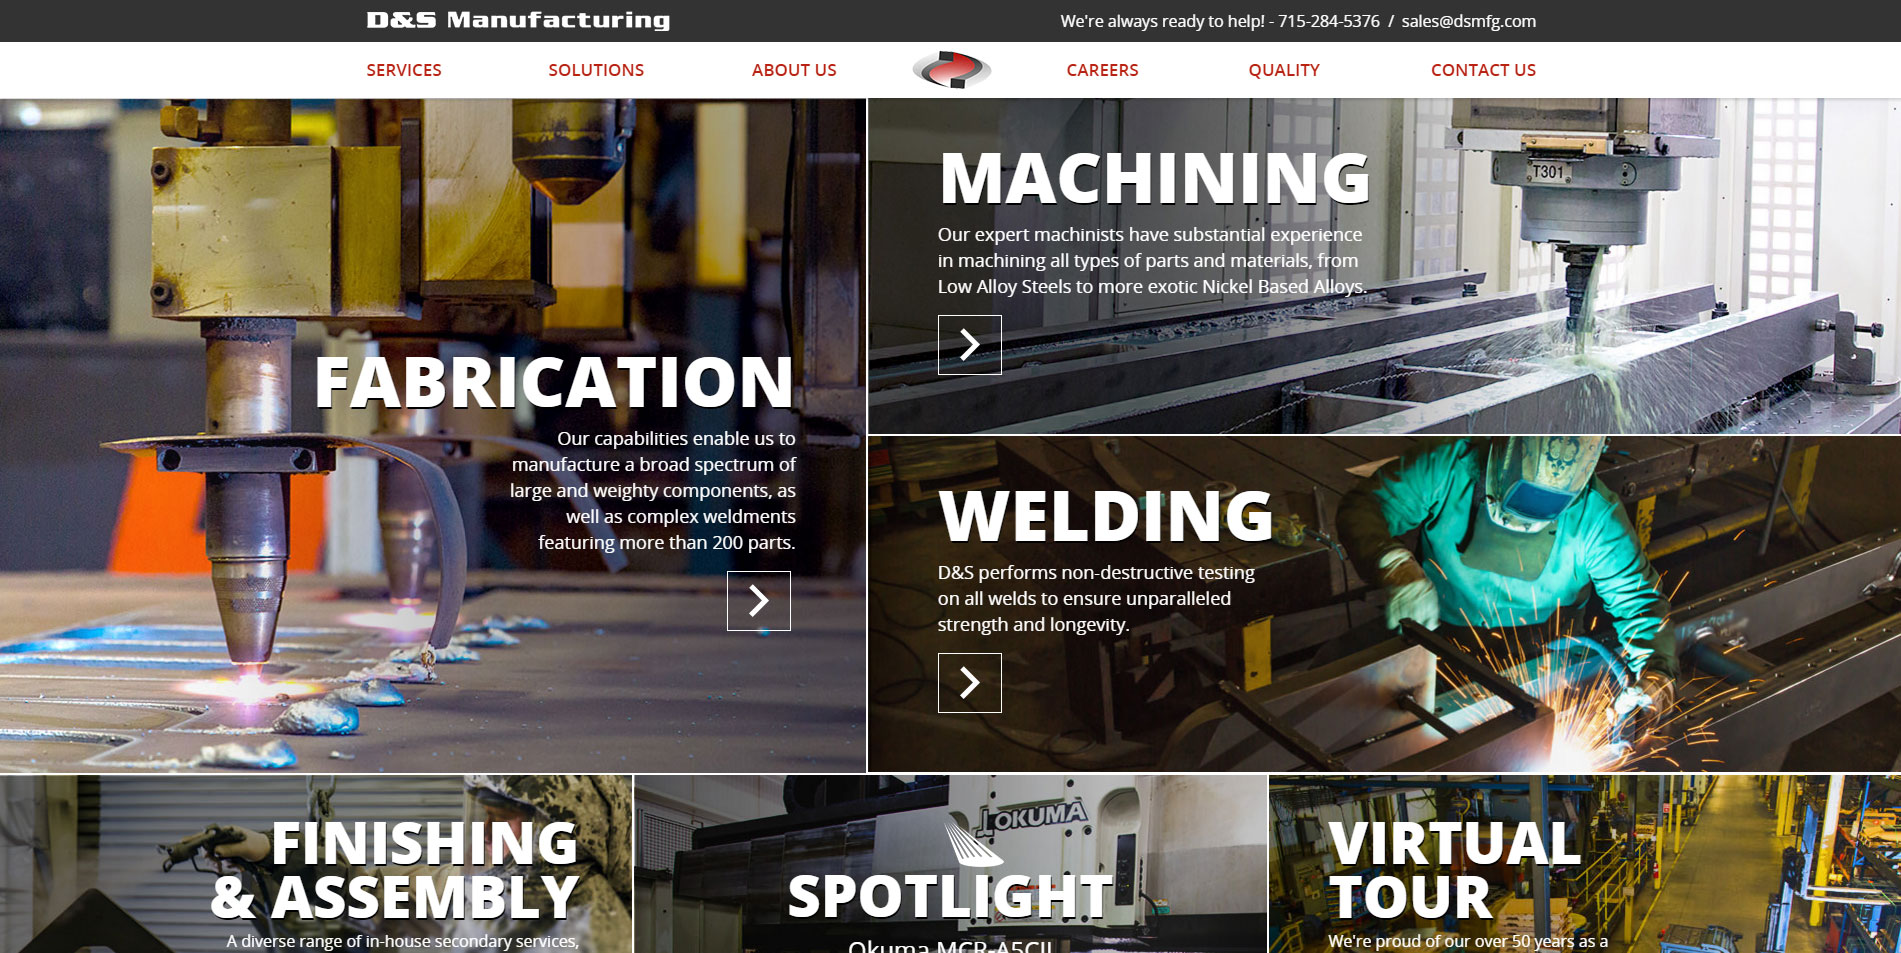 d-and-s-manufacturing-welding-new-website